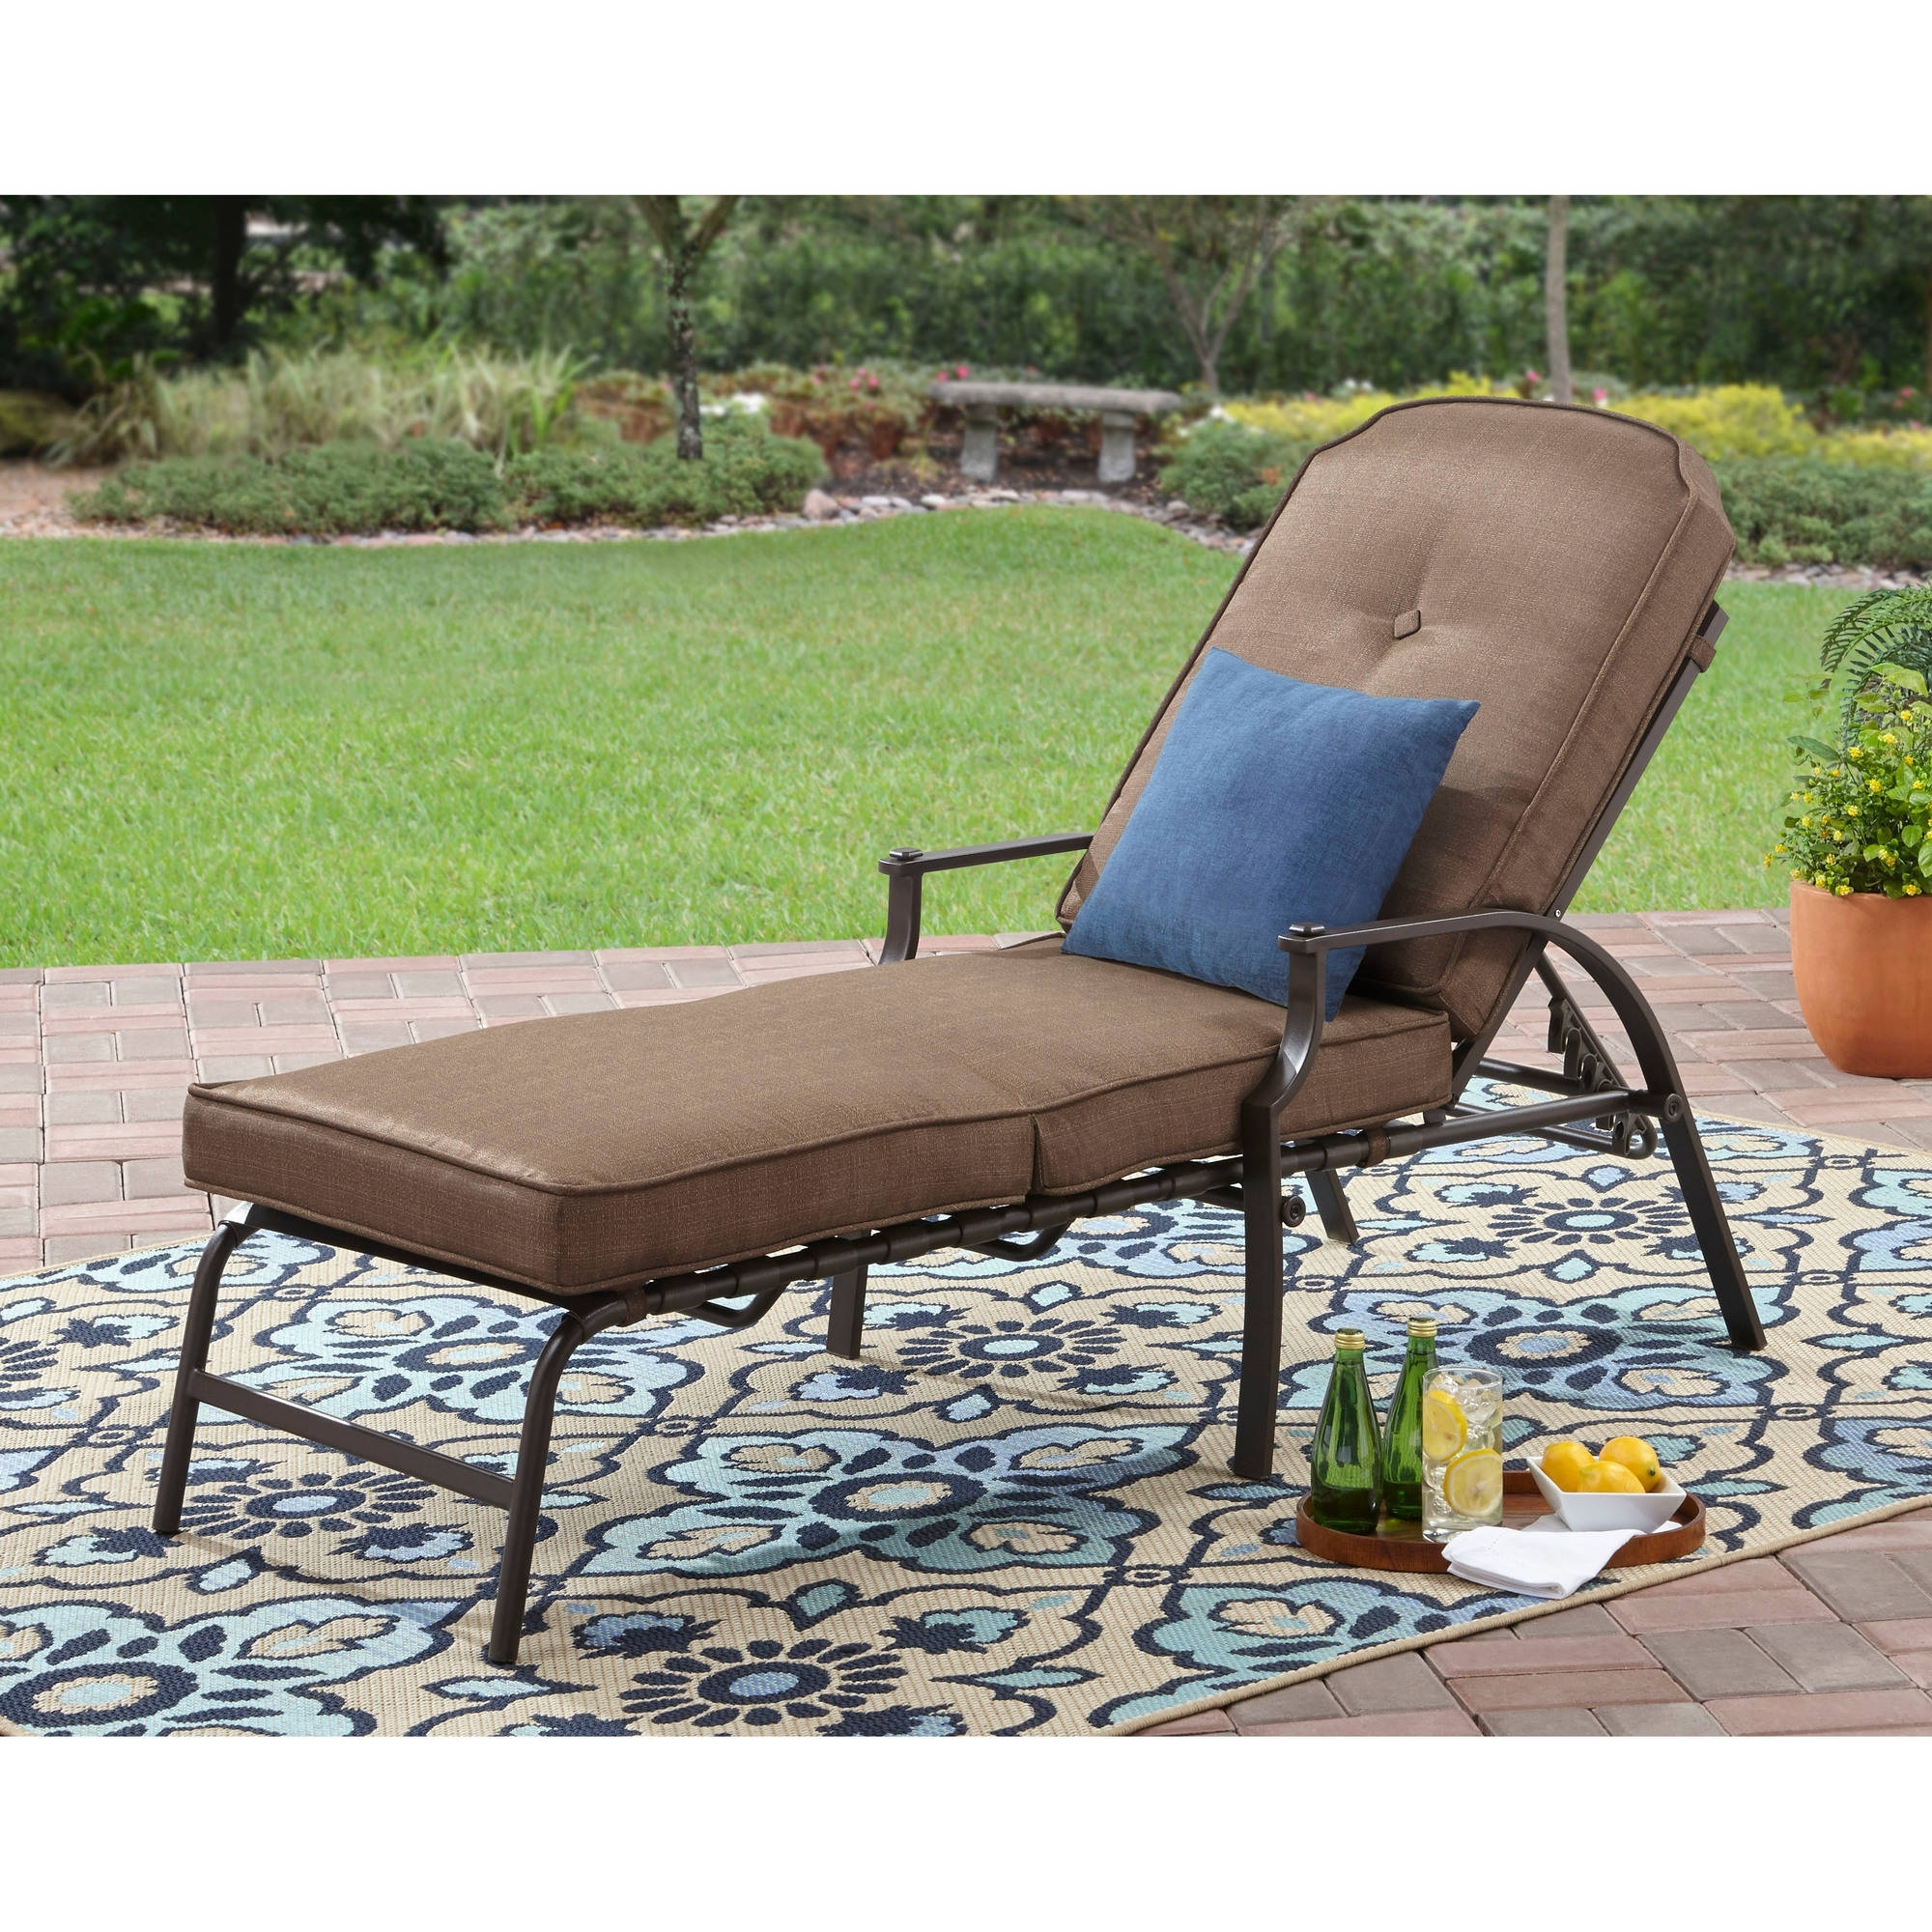 regarding chair academy sling mosaic plan folding chaise lounge